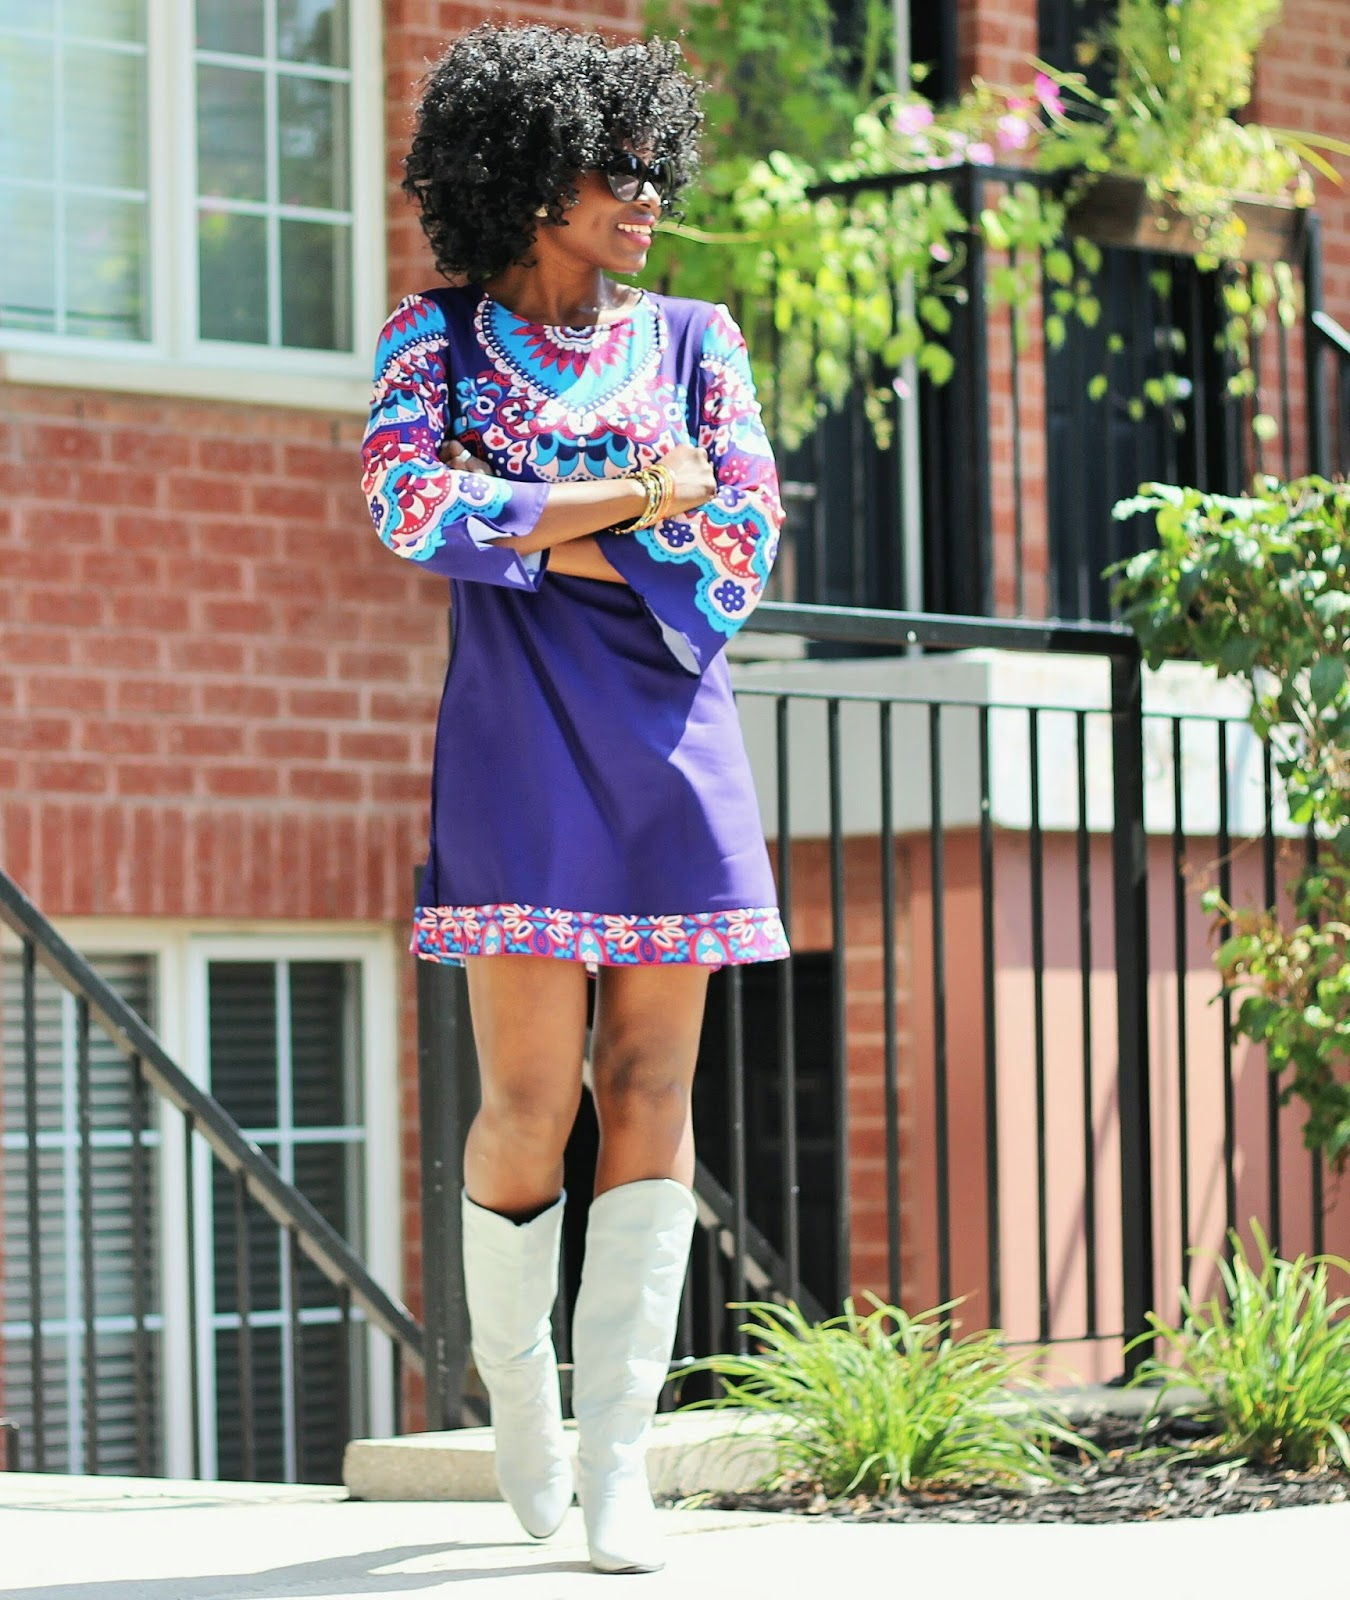 AFTER SUMMER COMES FALL: THE IN BETWEEN DRESS X FALL BOOTS/PRE-FALL LOOK